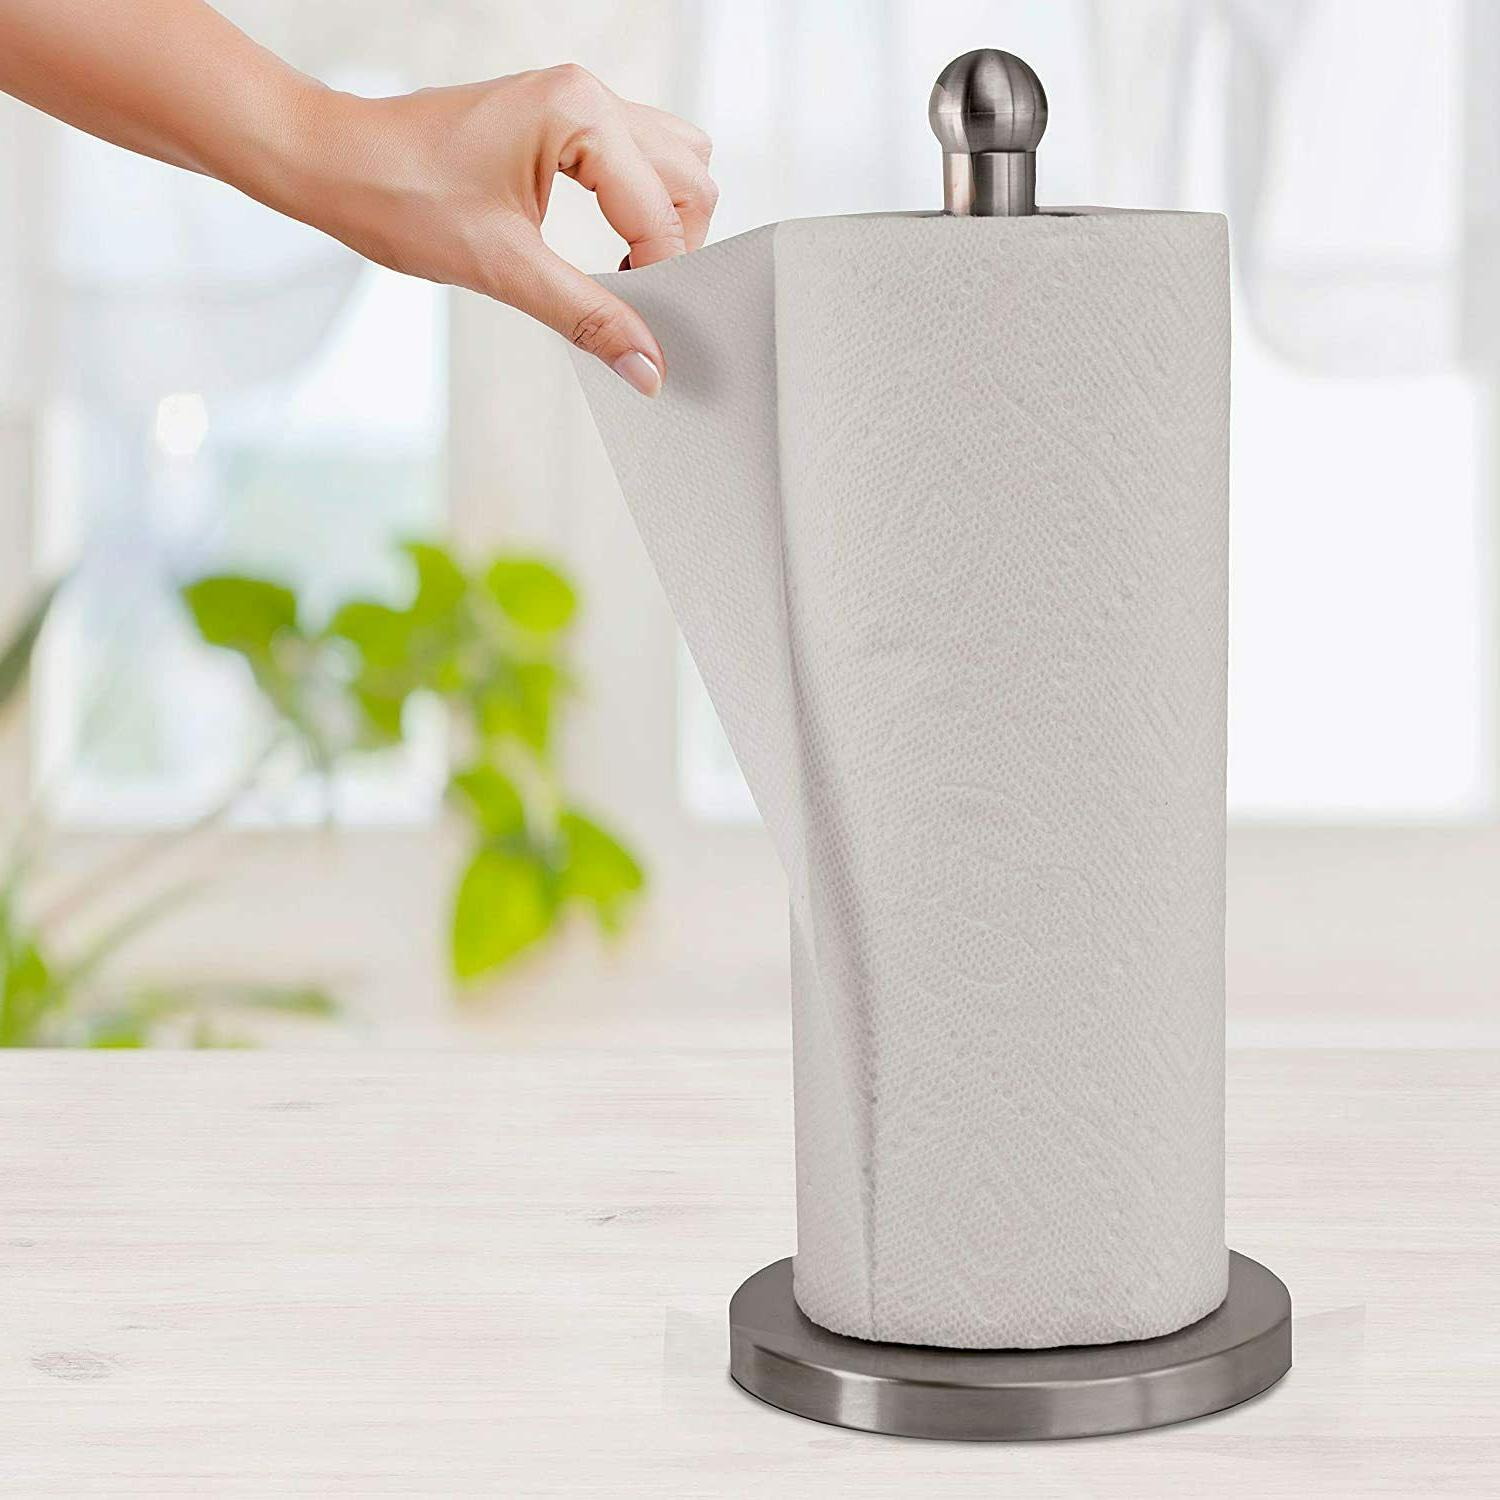 Stainless Steel Paper Towel Dispenser Weighted Base